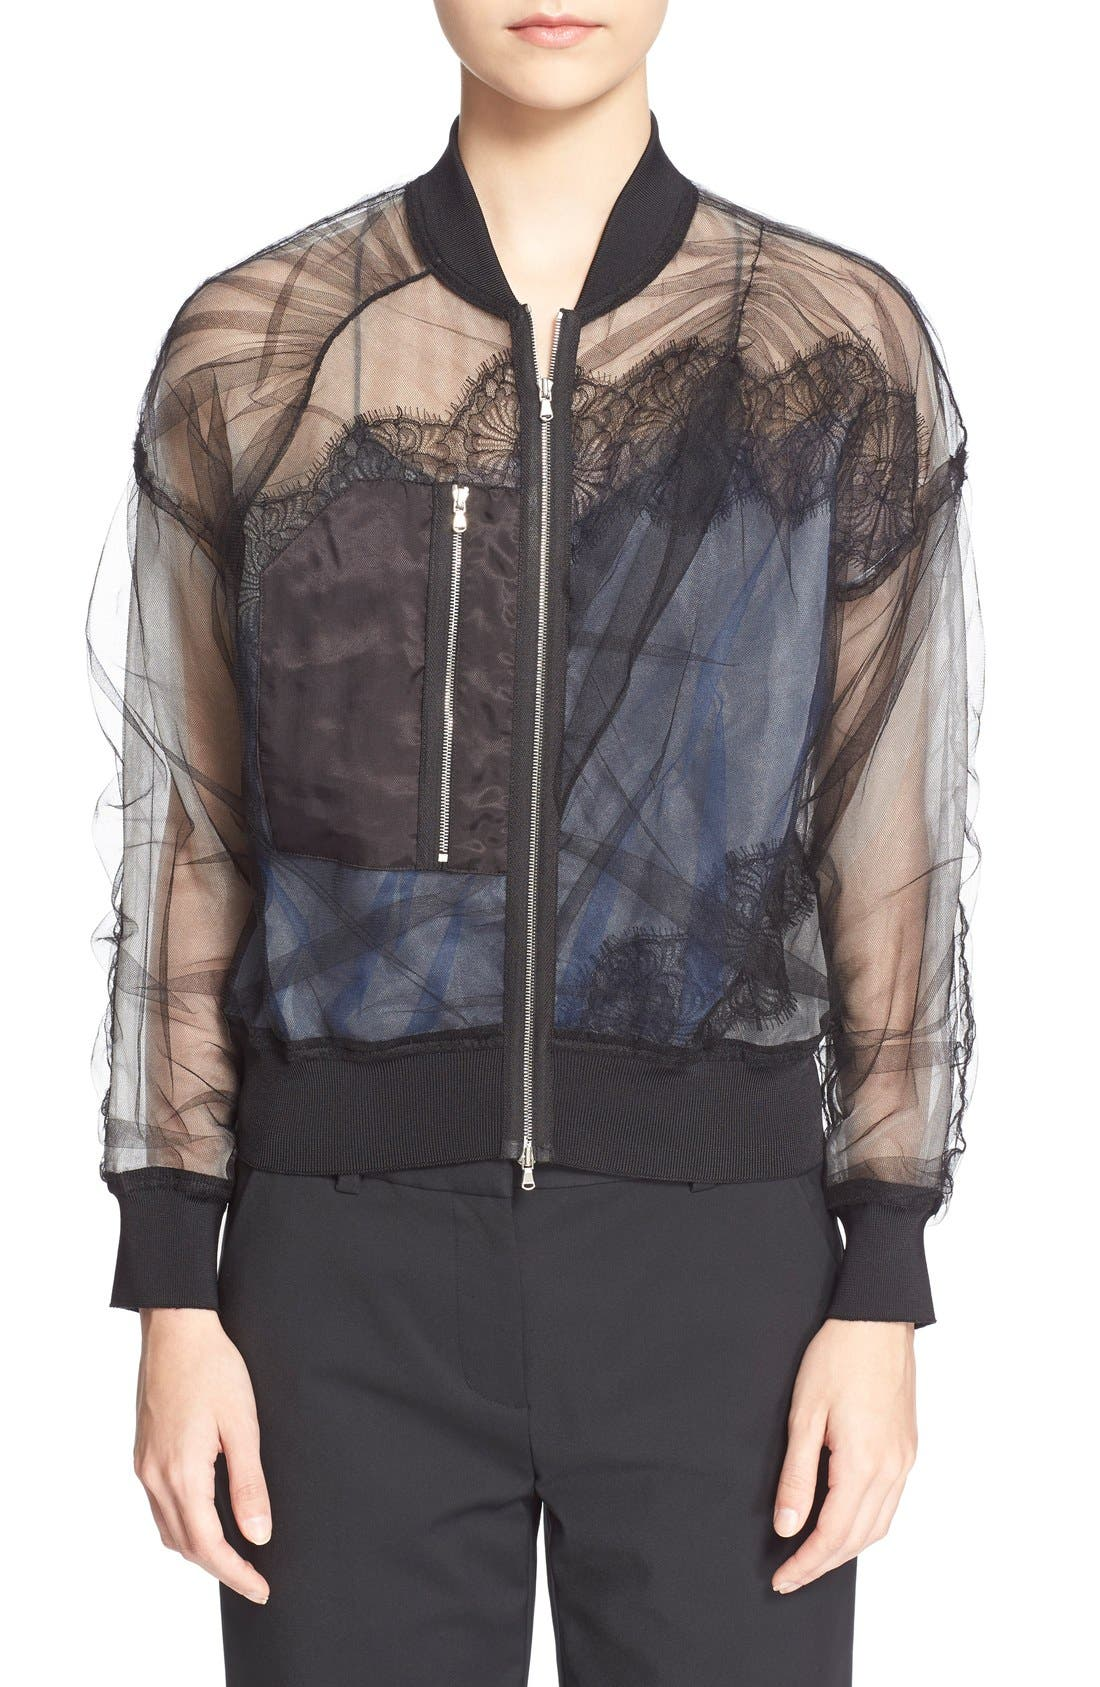 Main Image - 3.1 Phillip Lim Gathered Sheer Chiffon Bomber Jacket